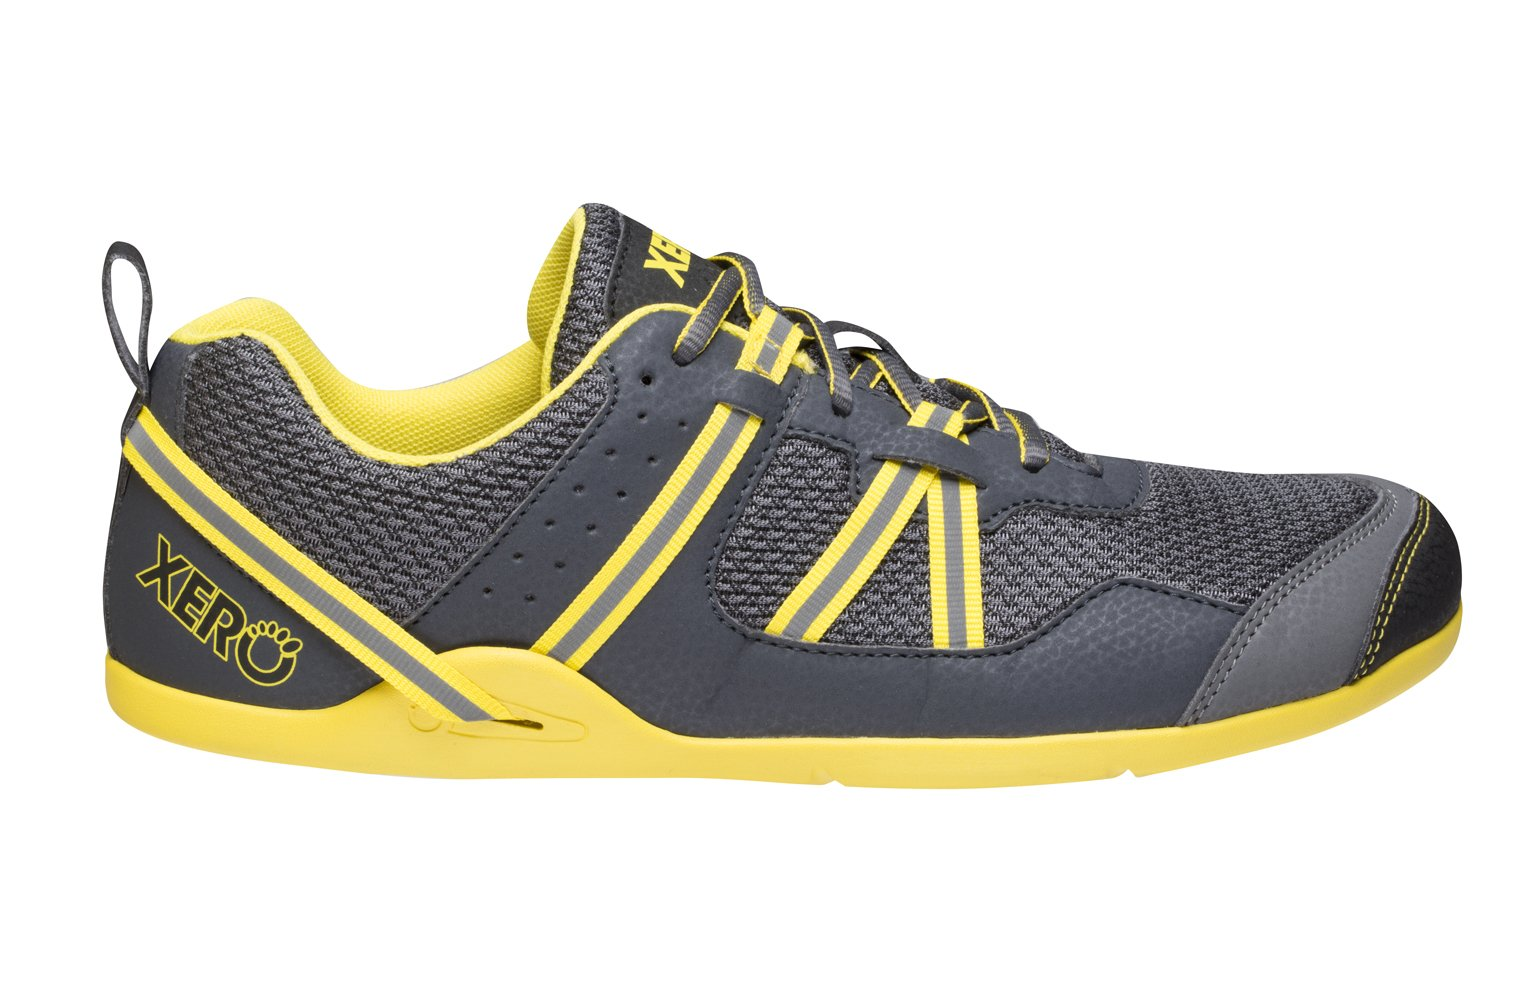 Xero Shoes Prio - Men's Minimalist Barefoot Trail and Road Running Shoe - Fitness, Athletic Zero Drop Sneaker - True Yellow by Xero Shoes (Image #2)